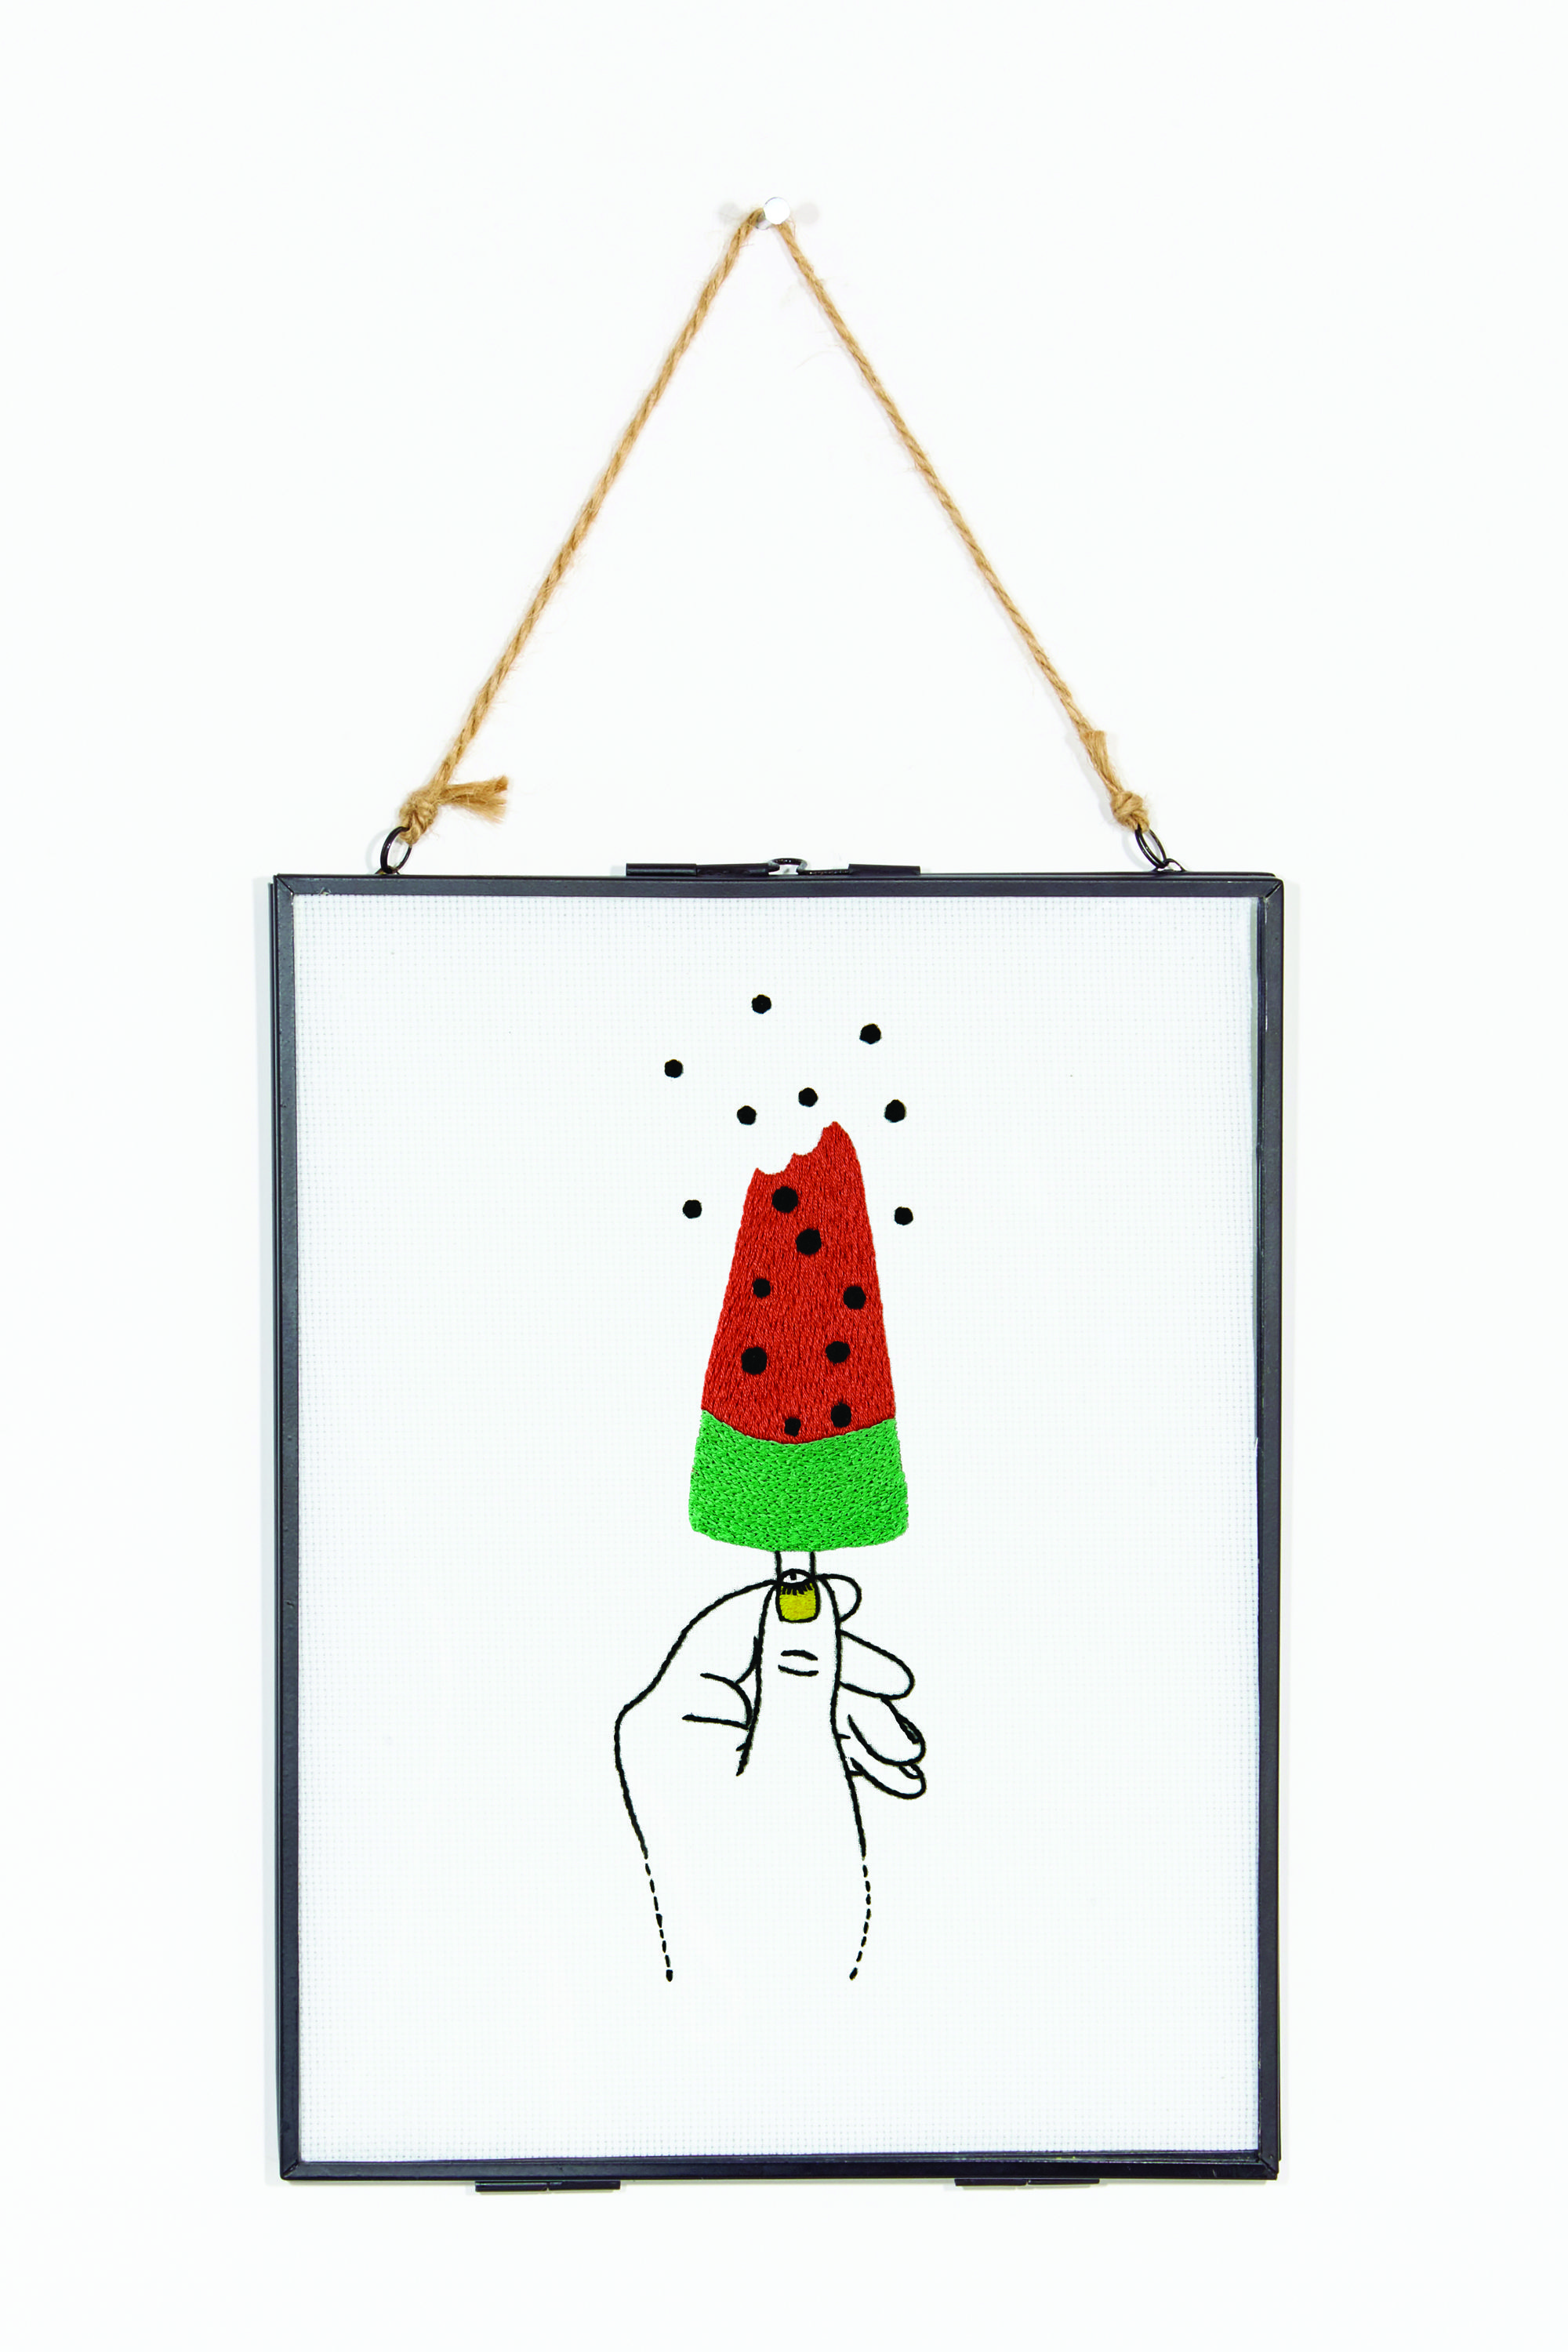 FREE EMBROIDERY PATTERN from DMC | FREE PATTERNS | Pinterest ...